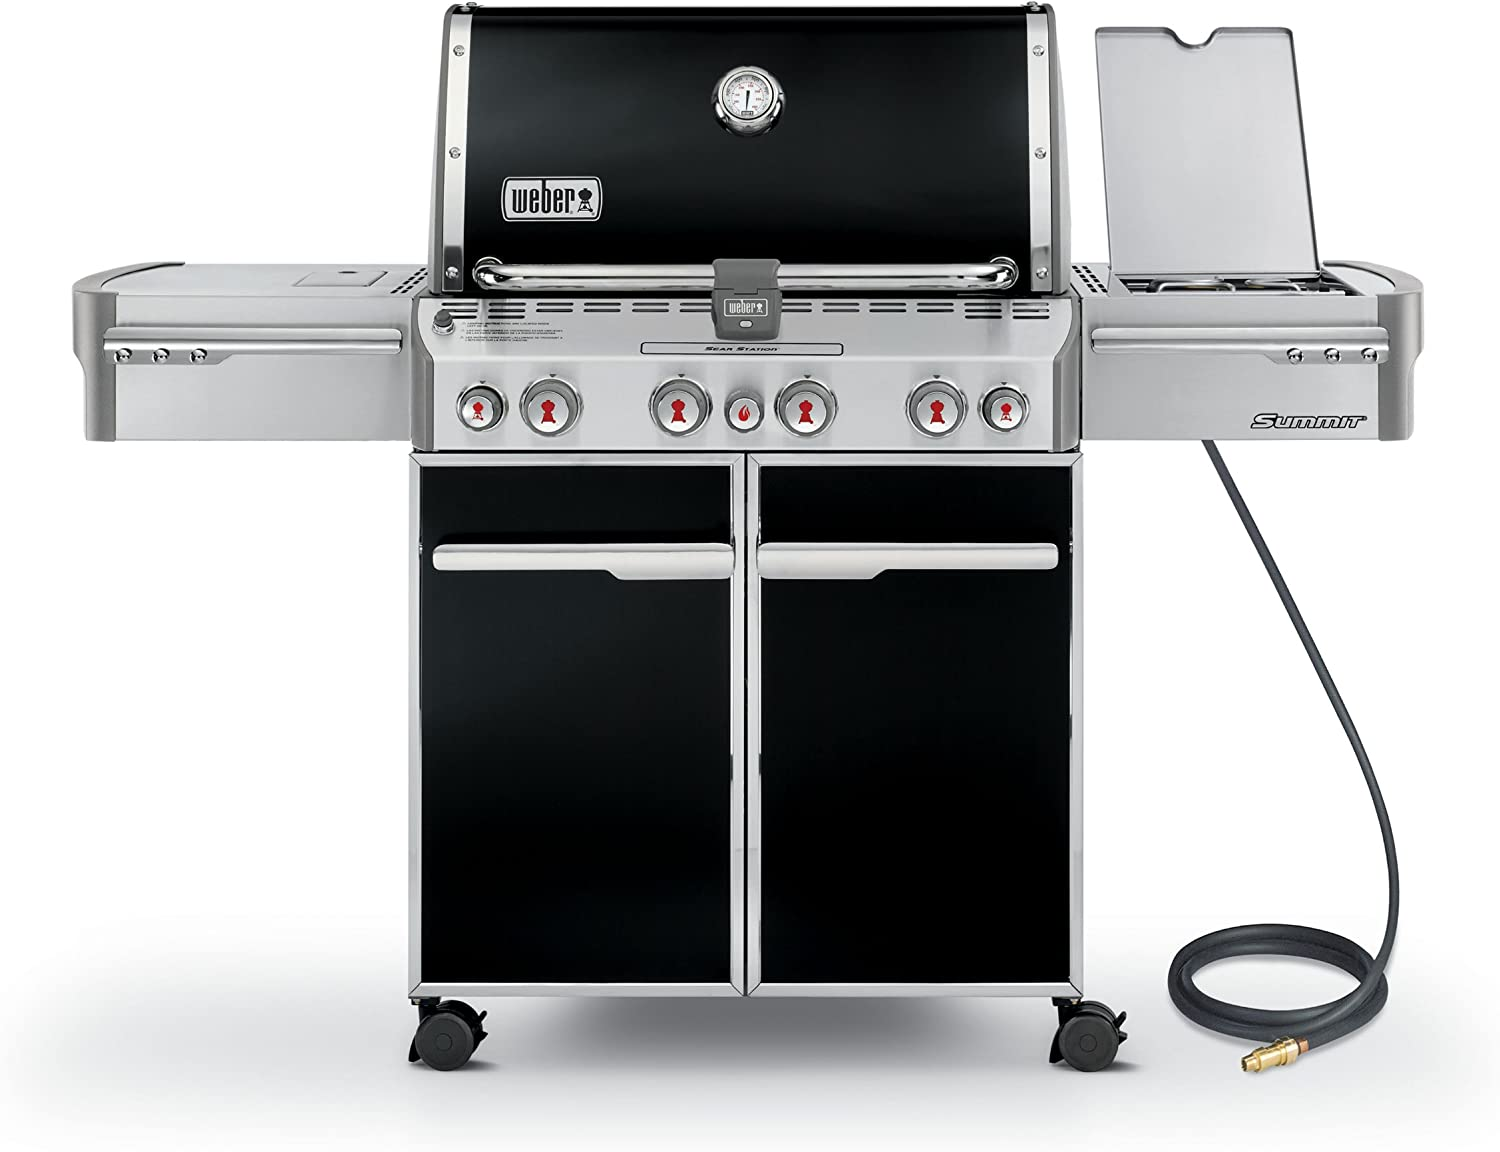 Weber 7271001 Summit E-470 4-Burner Natural Gas Grill, Black